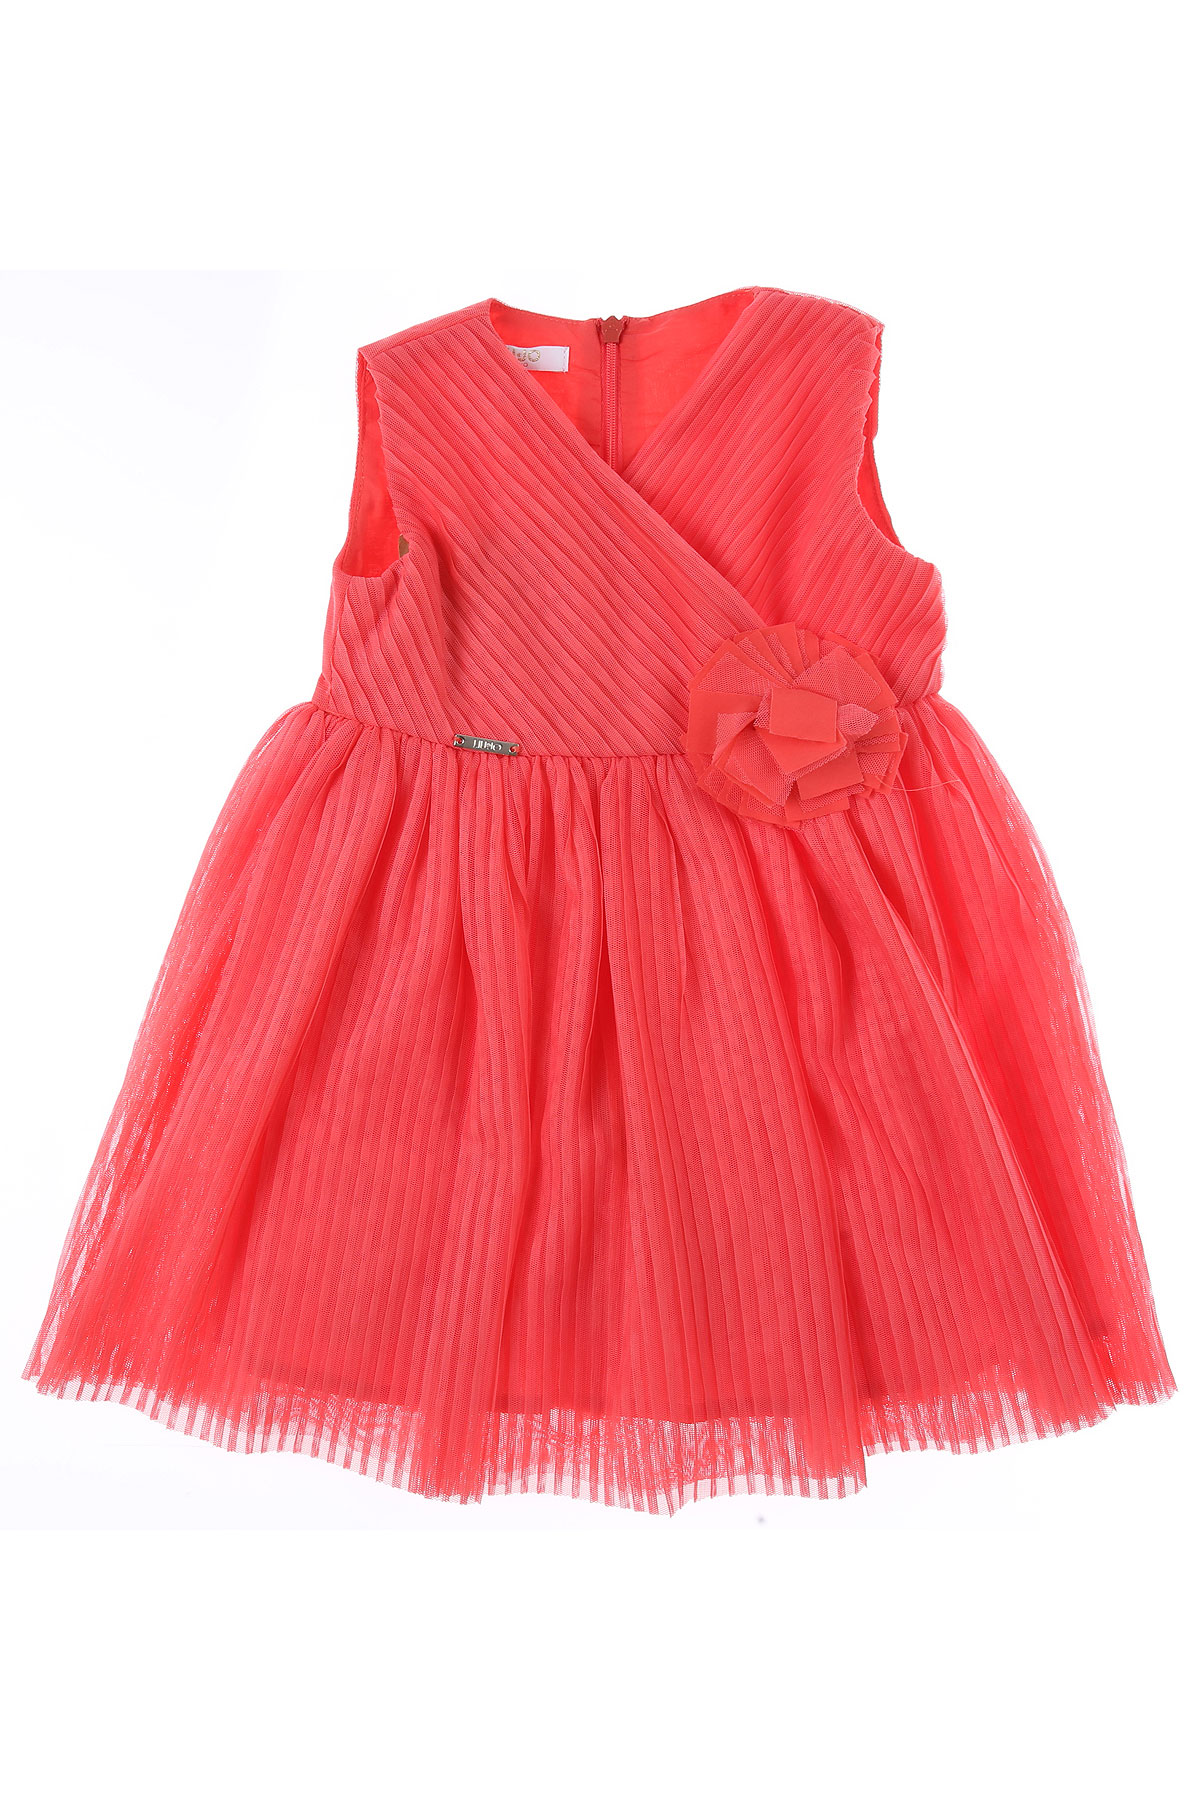 Liu Jo Baby Dress for Girls On Sale, Coral, polyester, 2019, 12M 18M 3M 6M